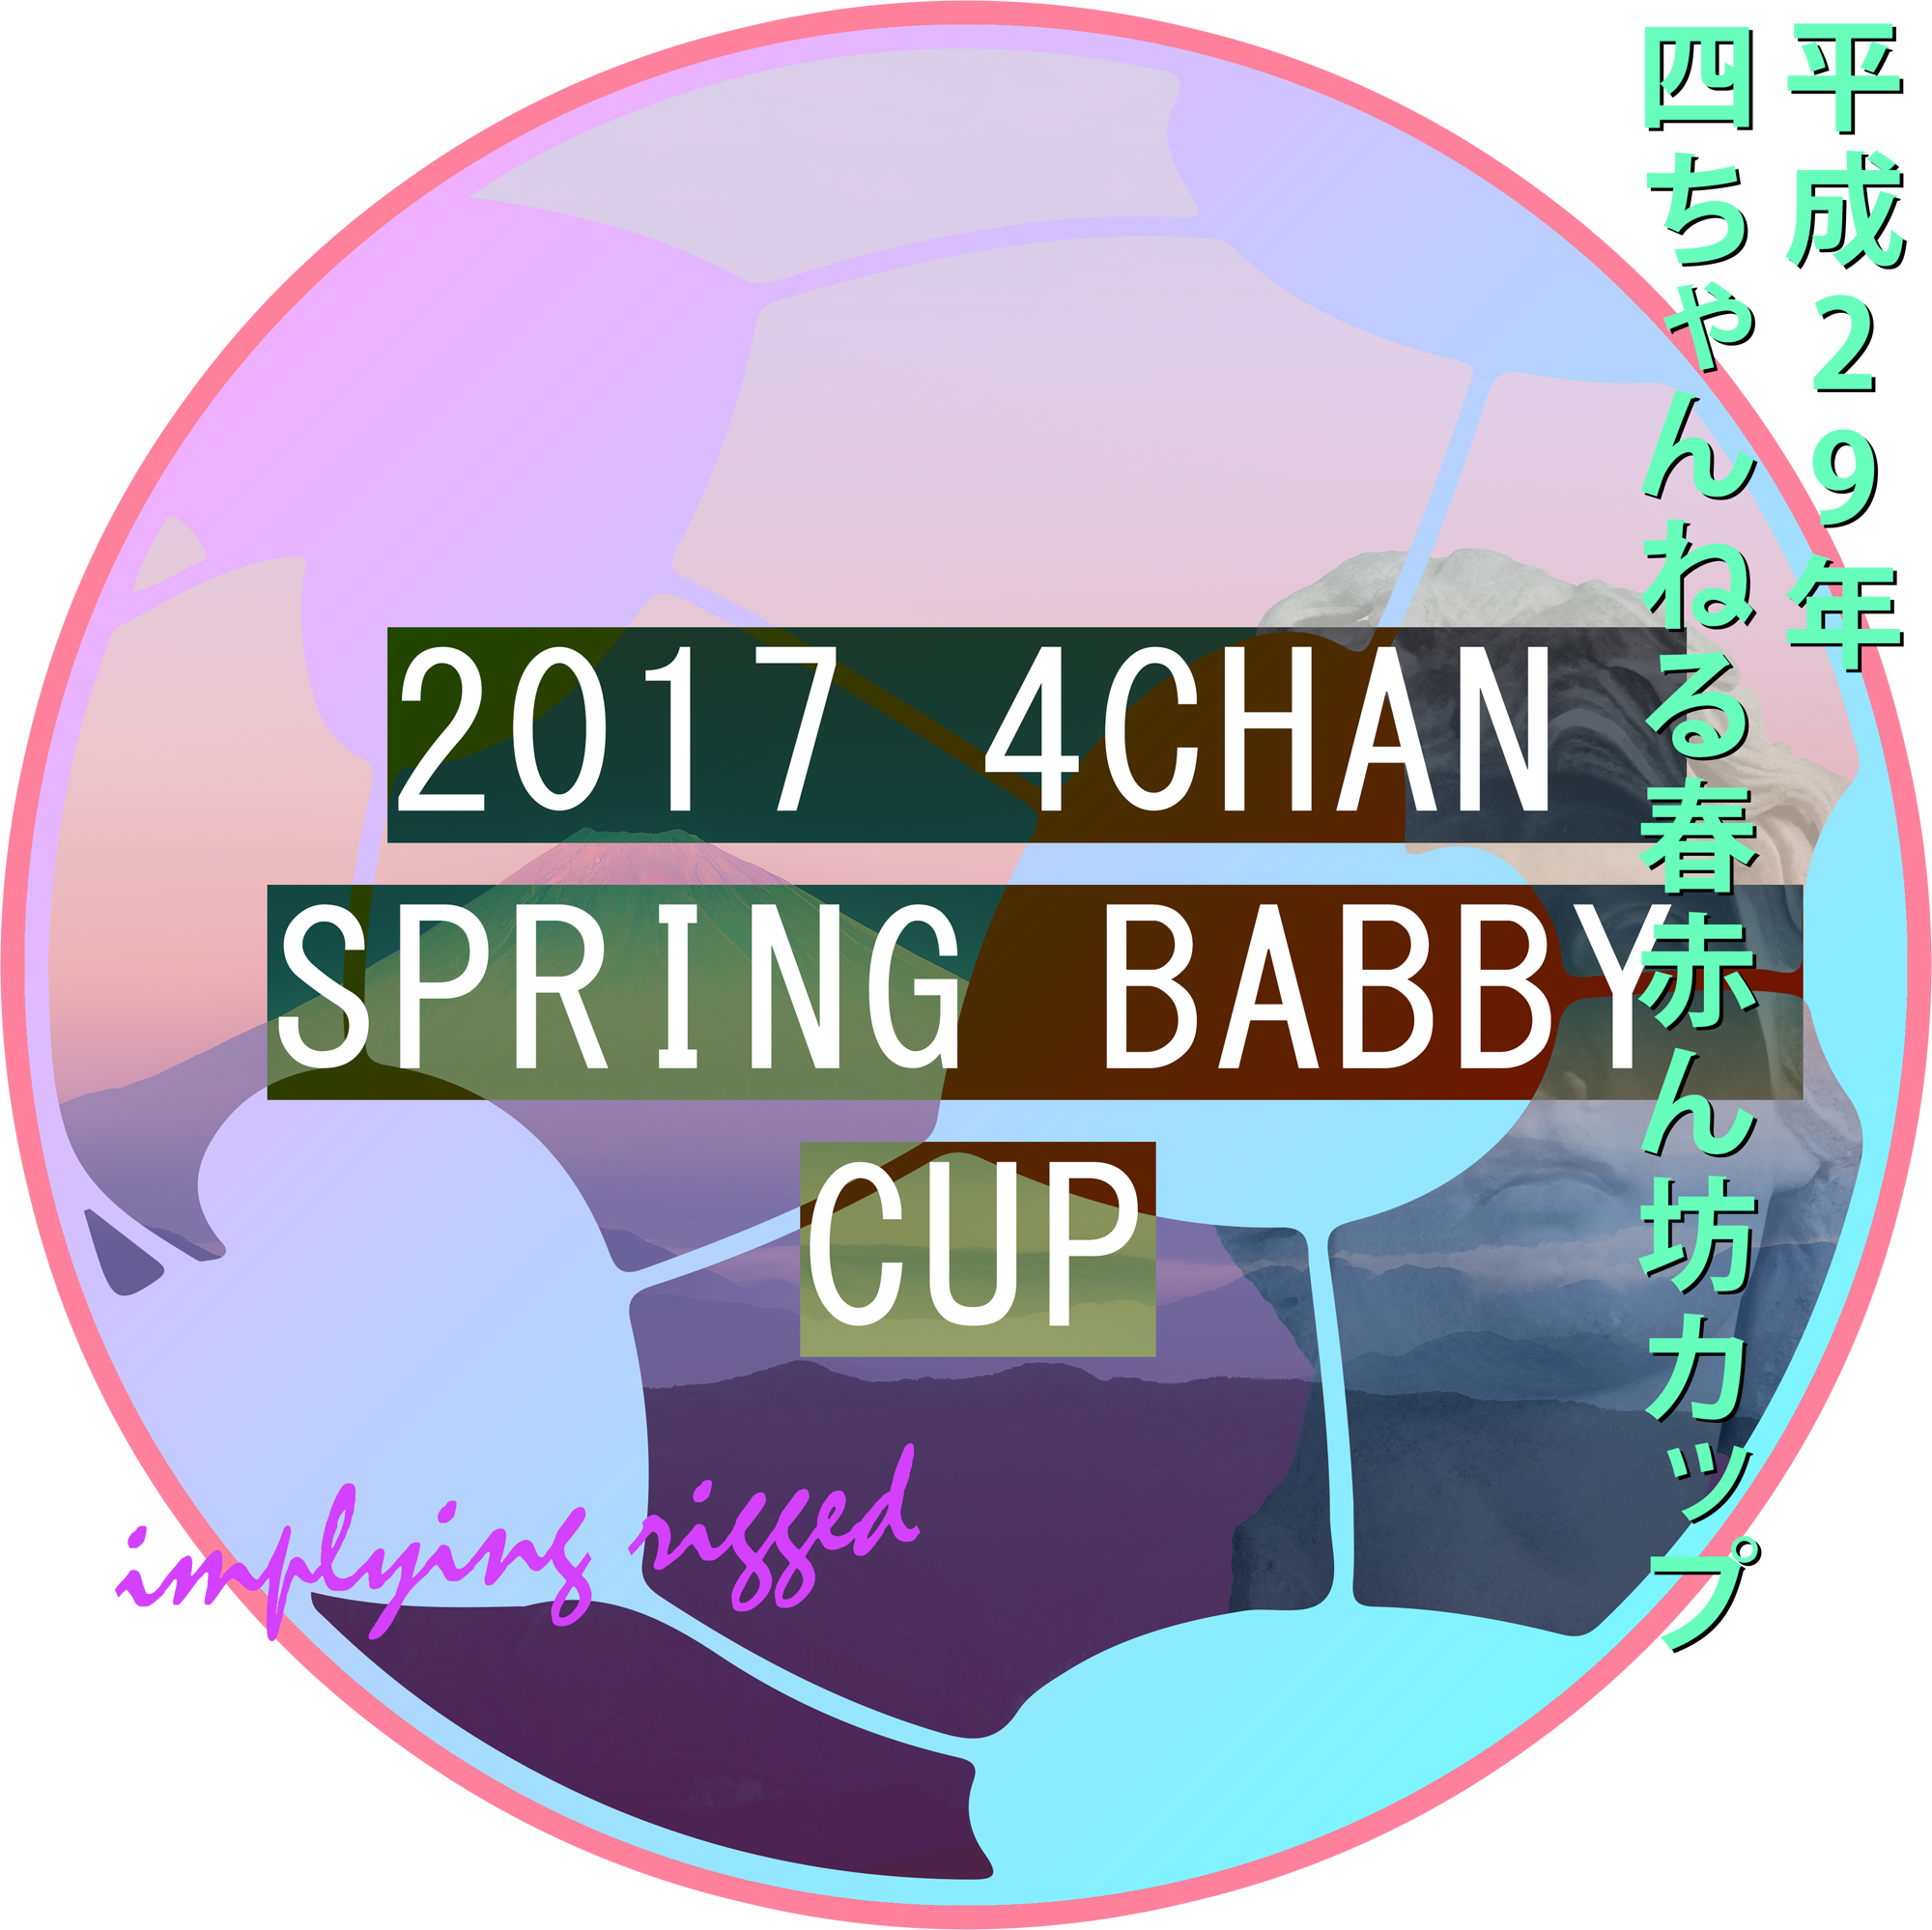 2017 4chan Spring Babby Cup